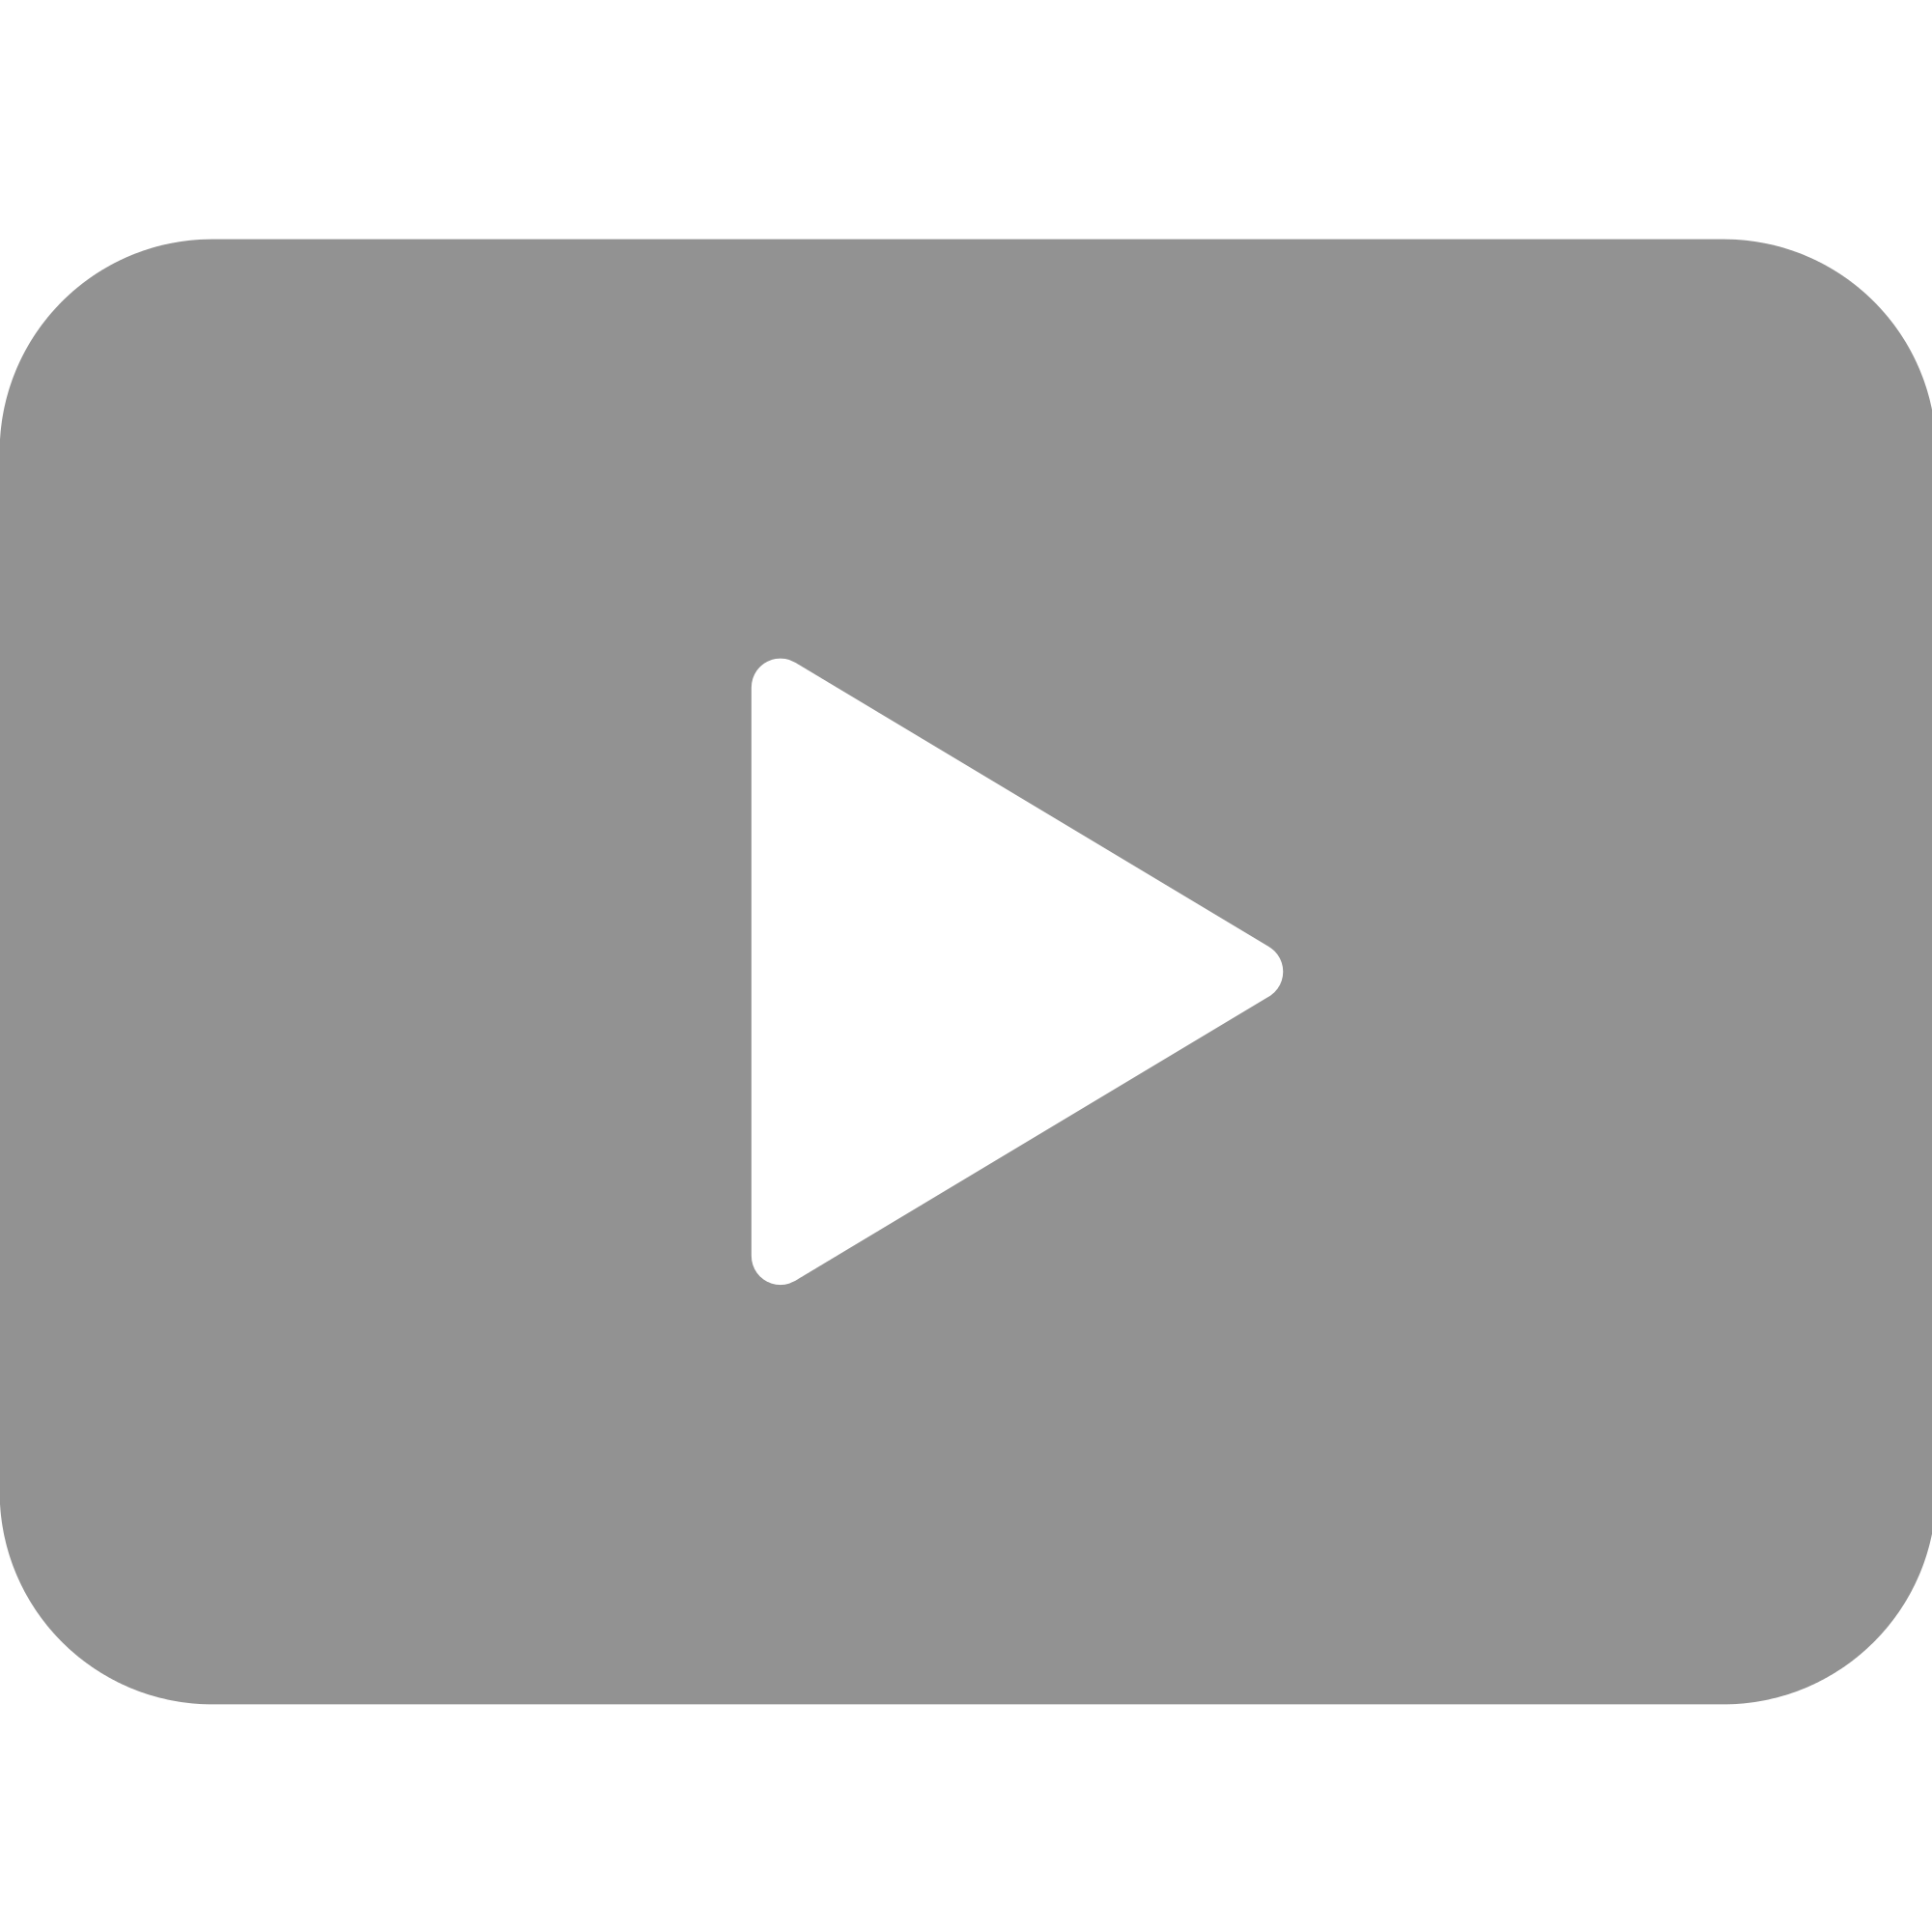 Svg preview thumbnail. Free youtube video player